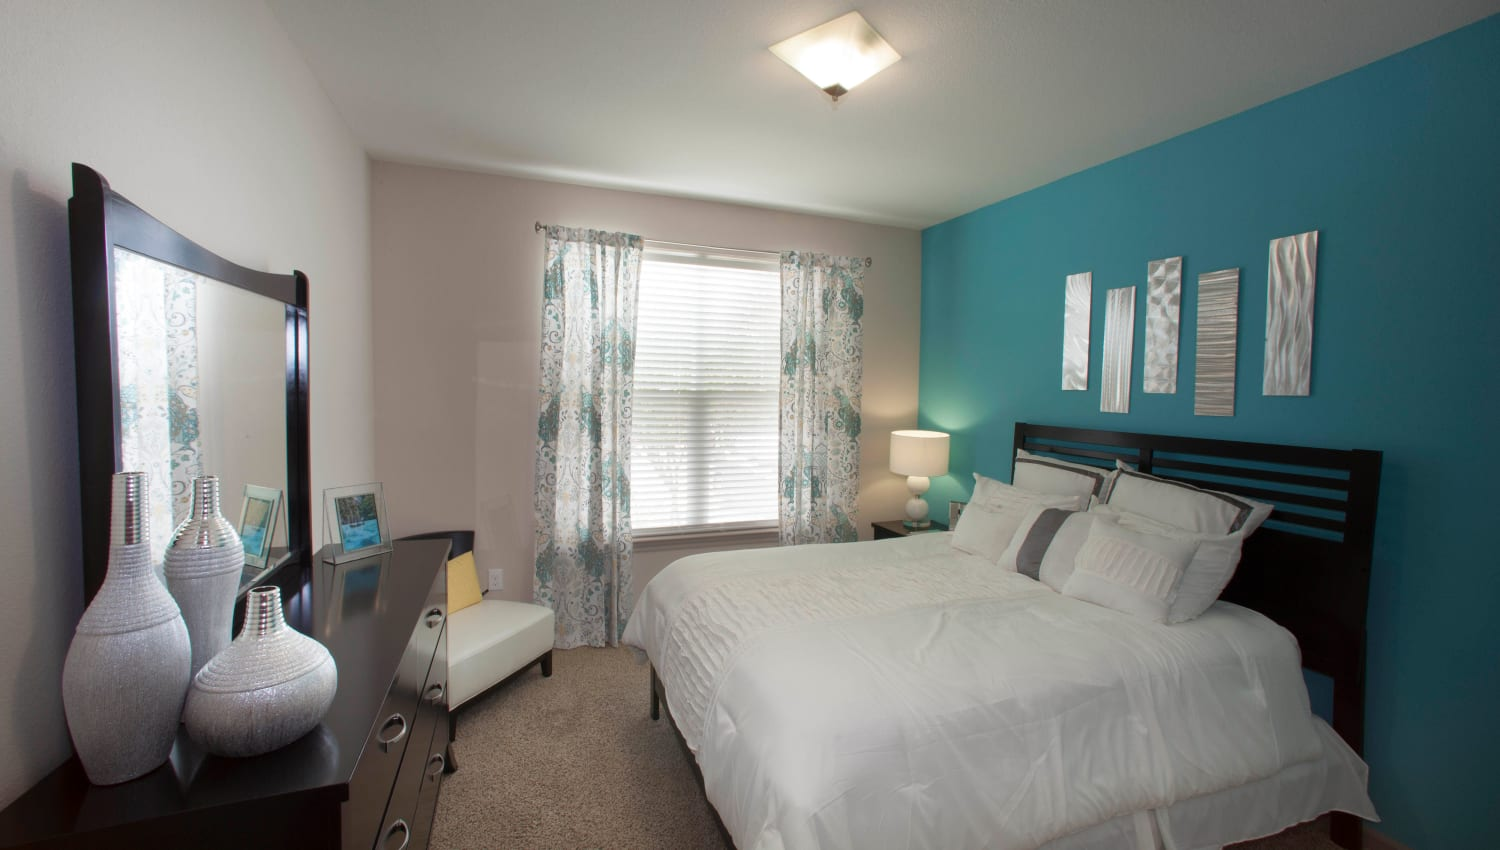 Plush carpeting and a large draped bay window in a model home's primary bedroom at Olympus Katy Ranch in Katy, Texas